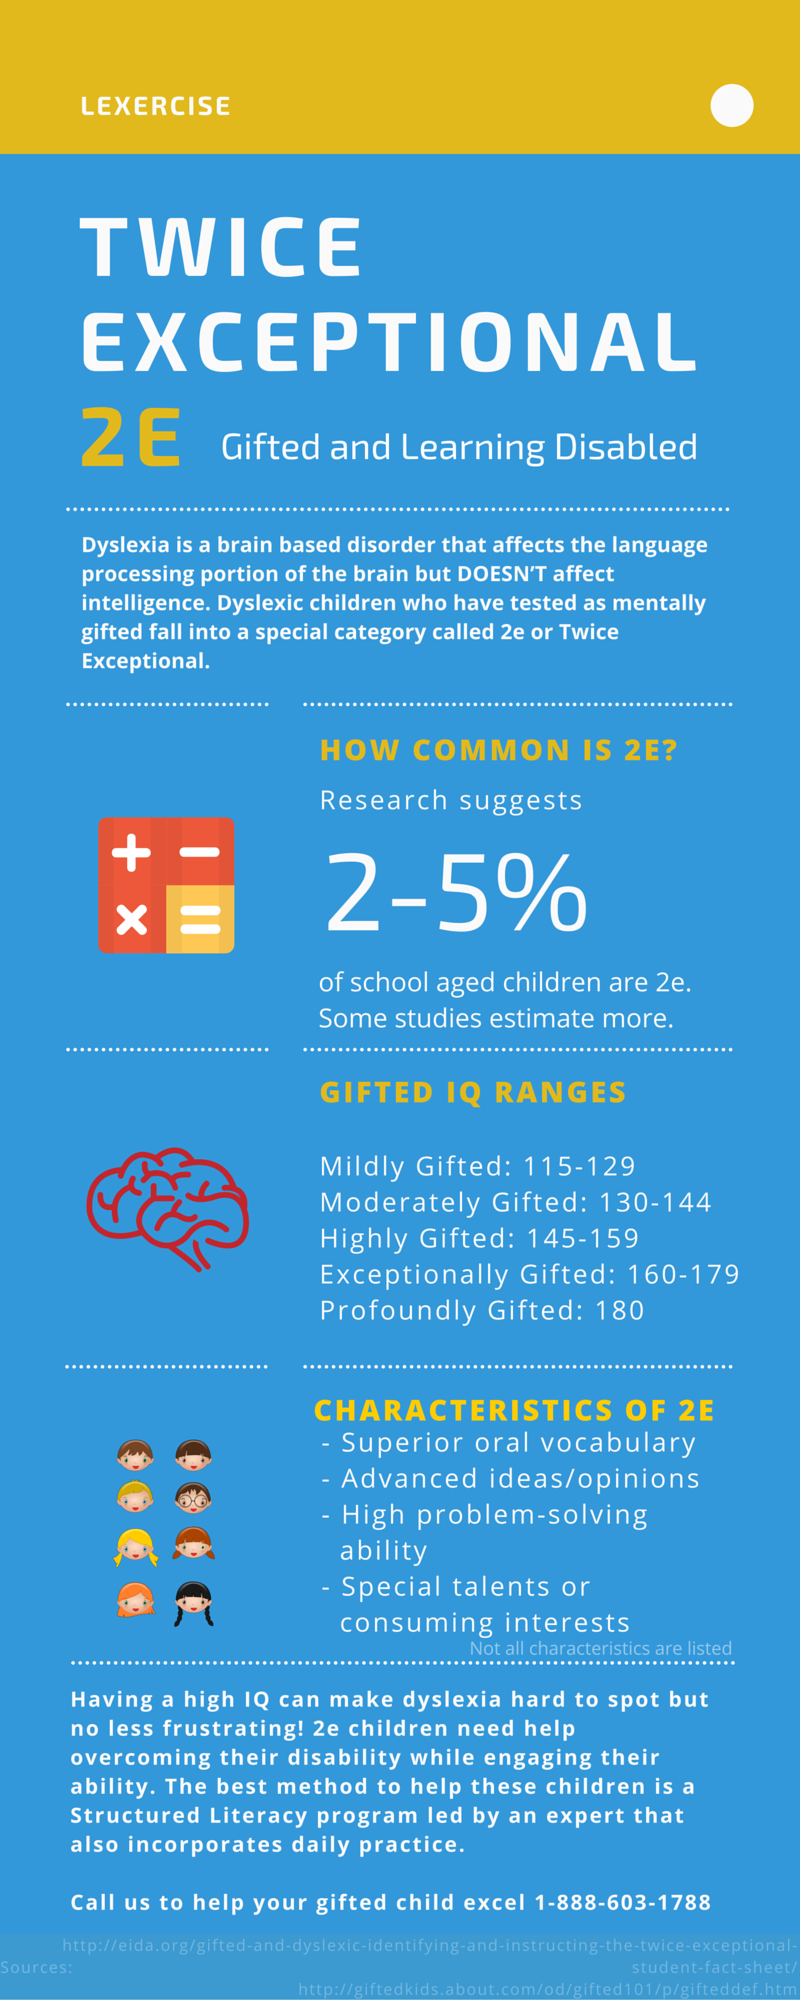 Free To Be 2e Supporting Twice >> An Awesome Infographic About Twice Exceptional Children Dyslexia